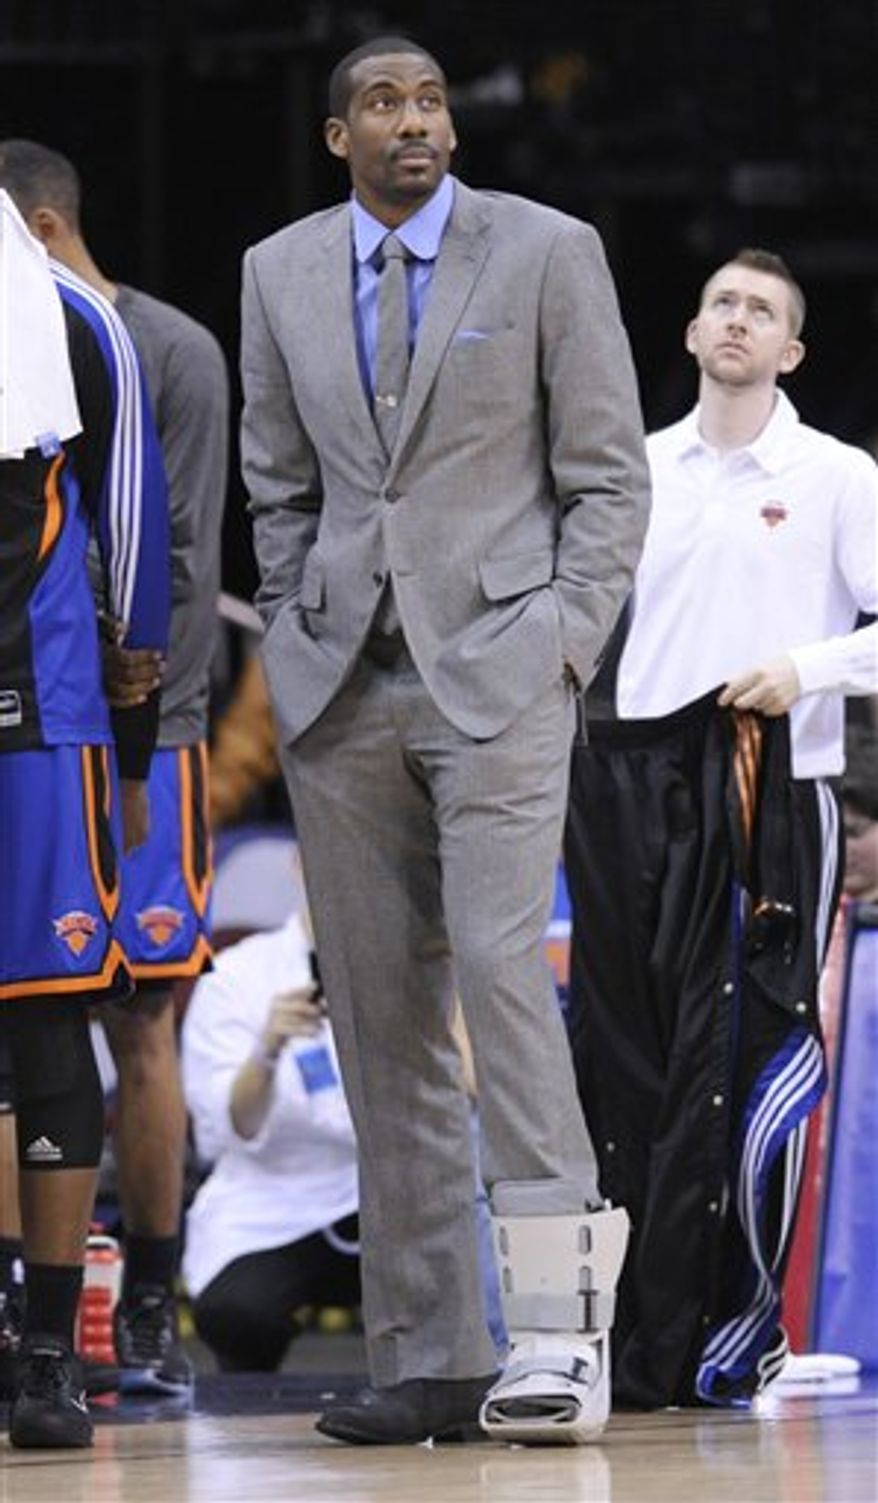 New York Knicks' Amar'e Stoudemire wears a boot on his foot as he looks on during a timeout in the fourth quarter of an NBA basketball game against the New Jersey Nets Friday, April 8, 2011 in Newark, N.J. The Knicks won 116-93. (AP Photo/Bill Kostroun)